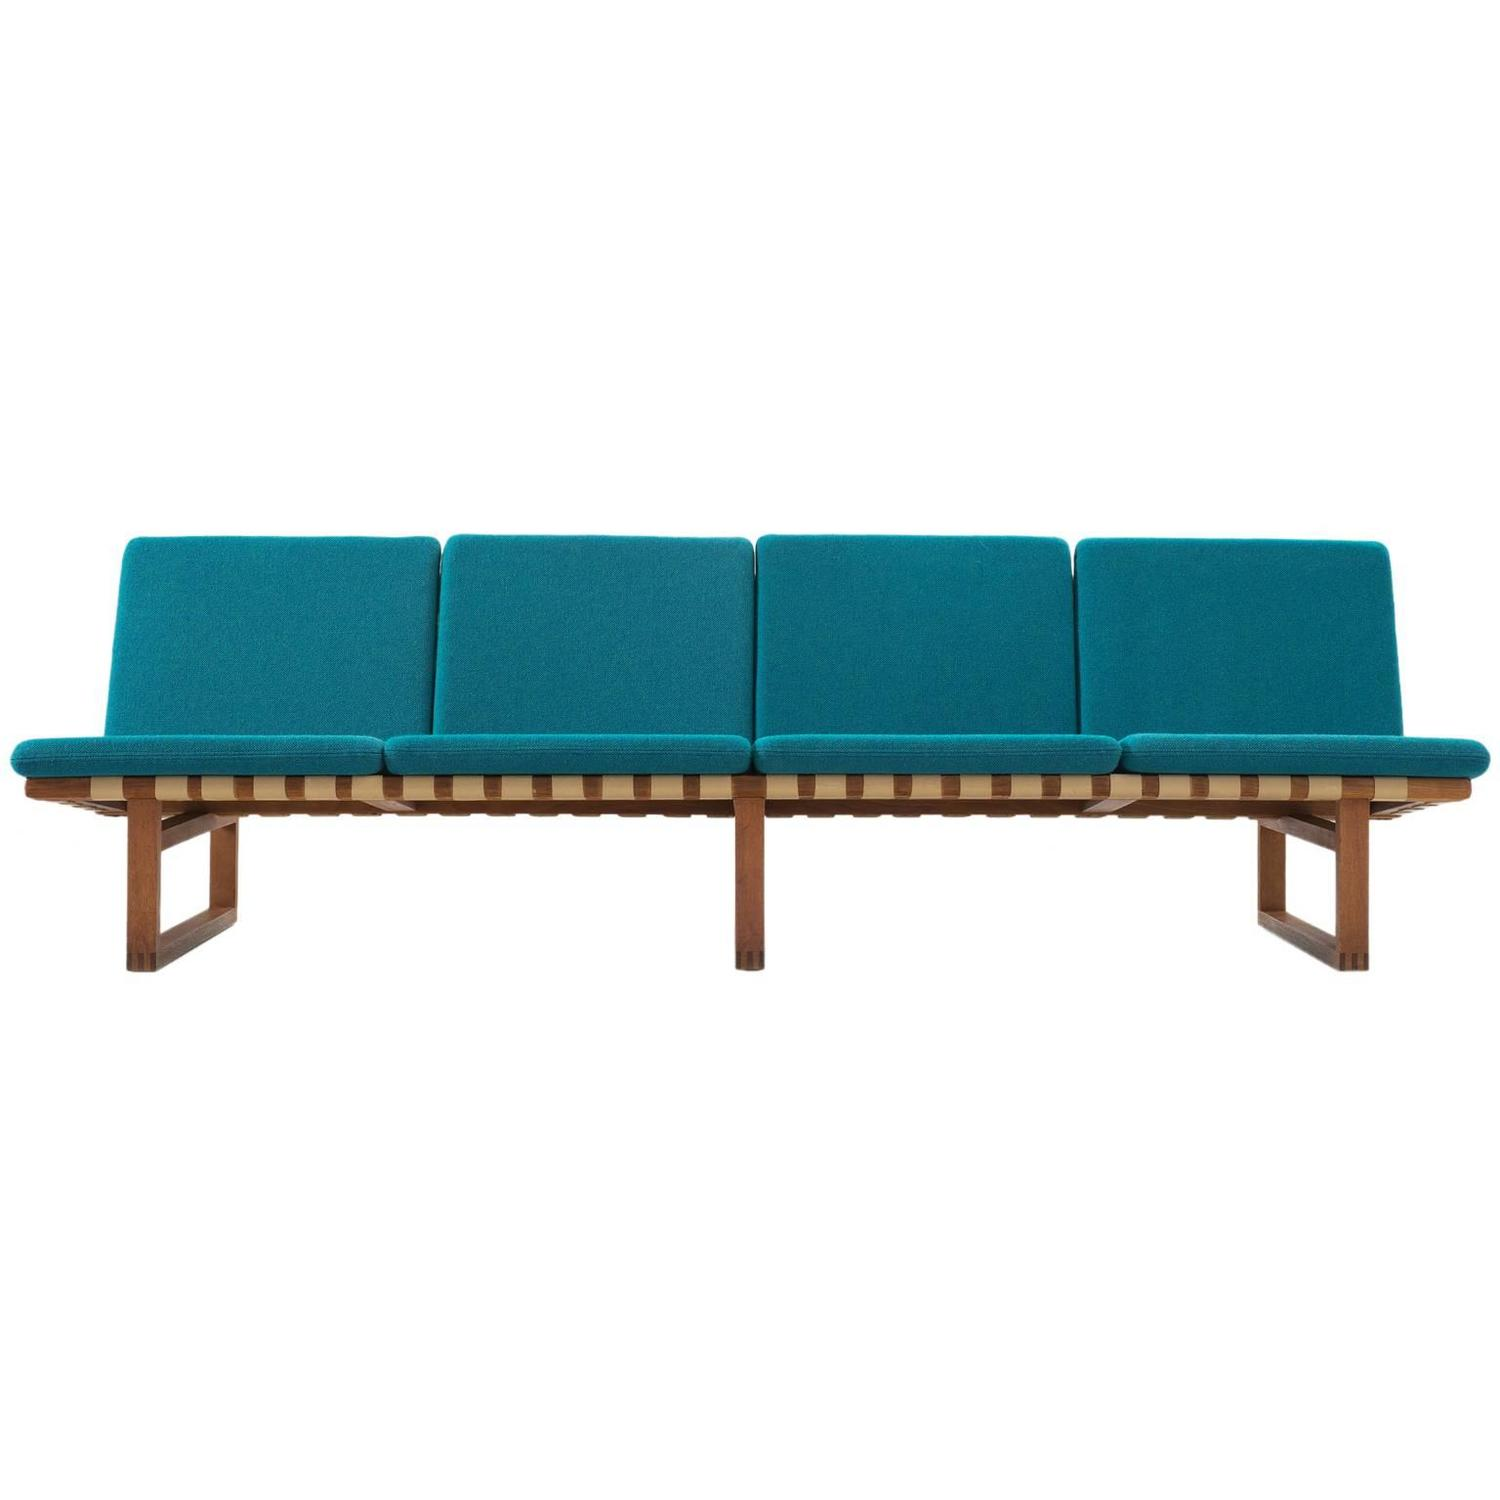 b rge mogensen early four seat sofa with petrol blue upholstery for sale at 1stdibs. Black Bedroom Furniture Sets. Home Design Ideas